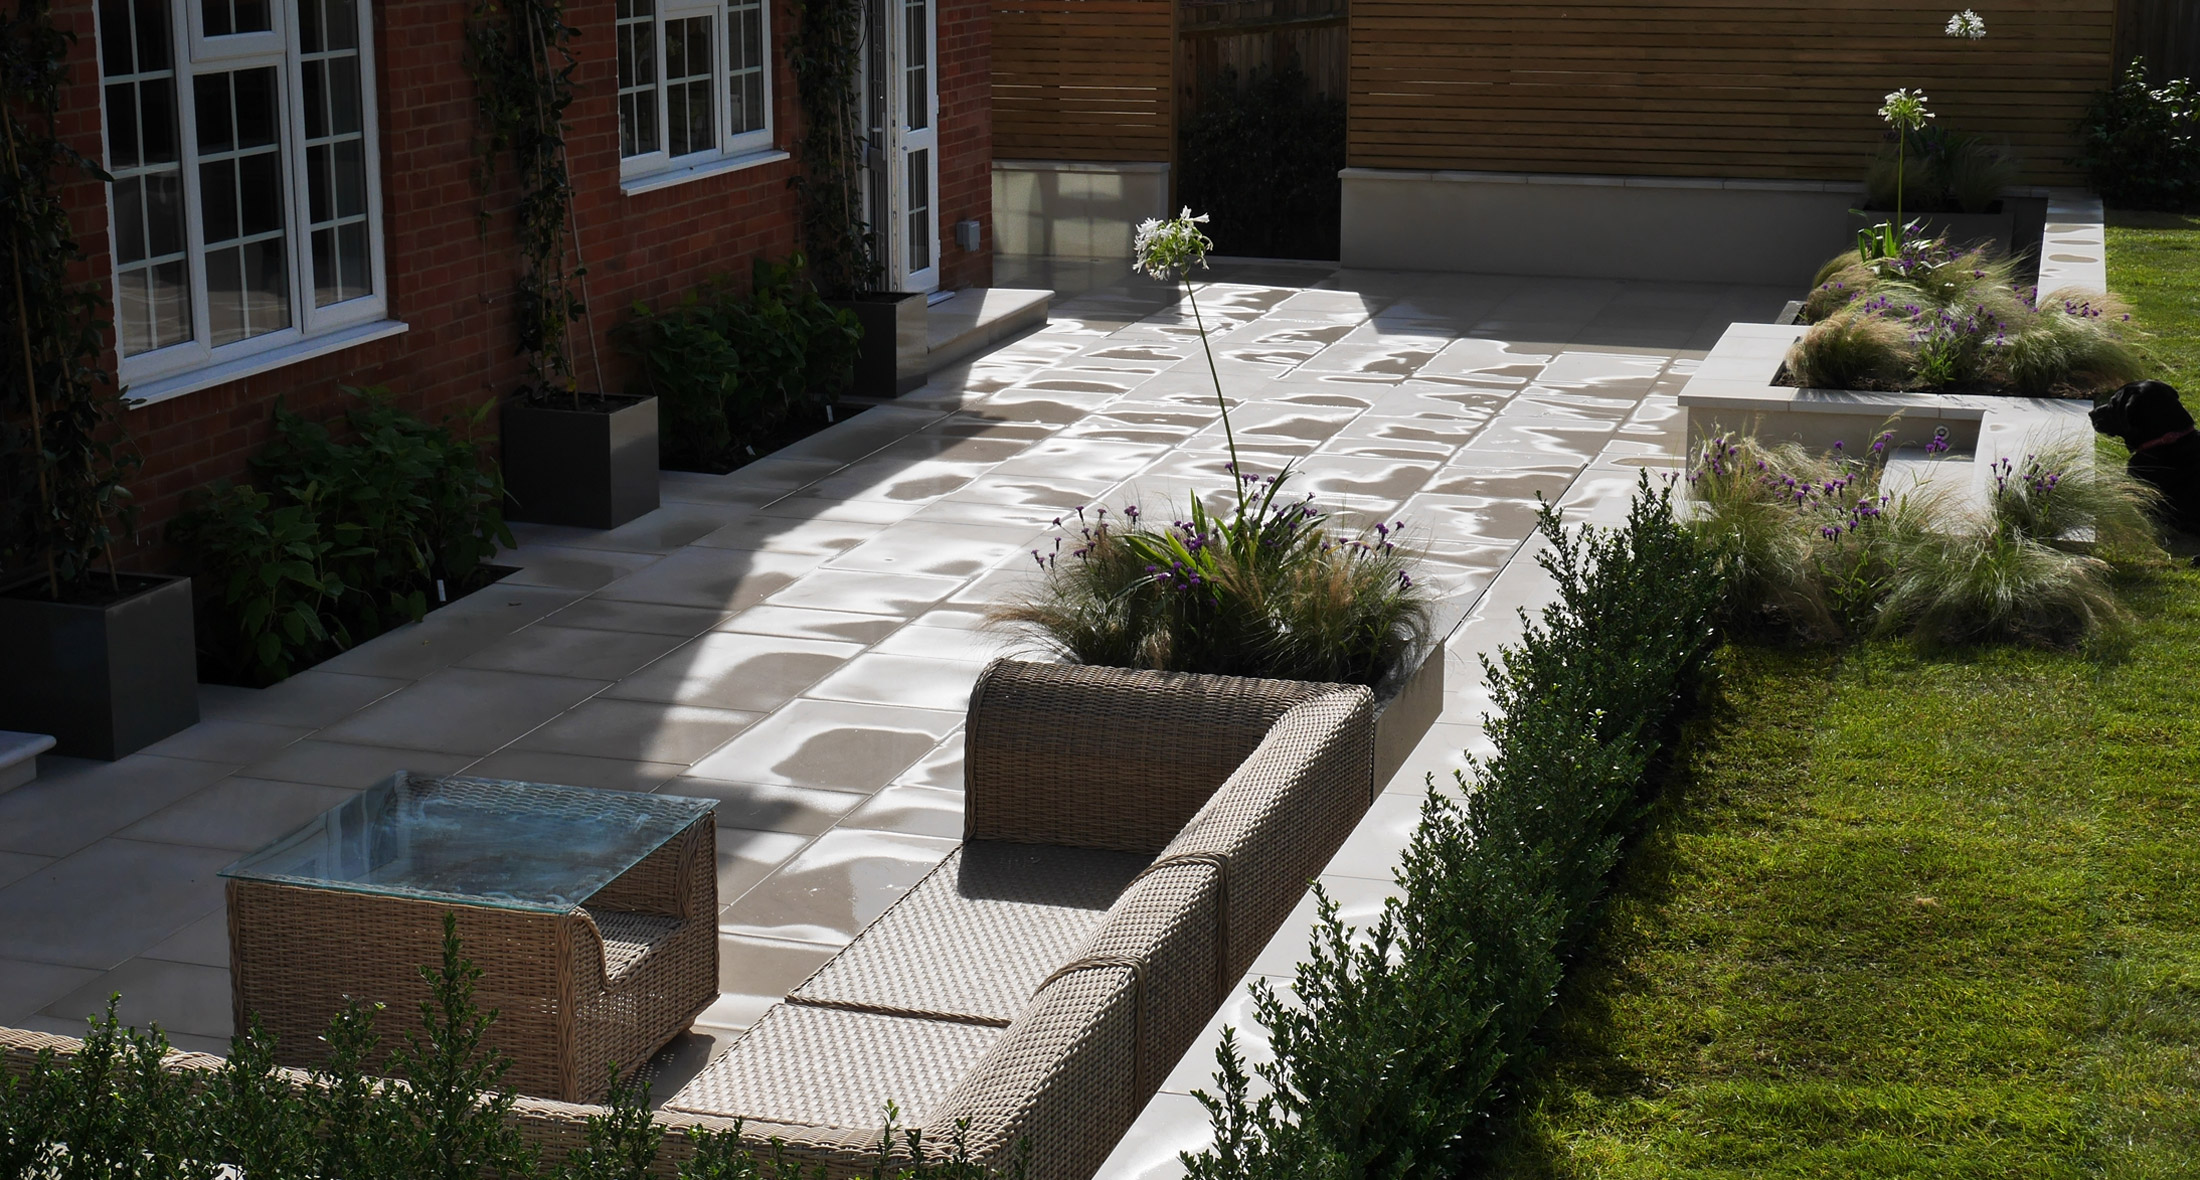 slate grey garden design landscaping tunbridge wells kent - Garden Design Kent